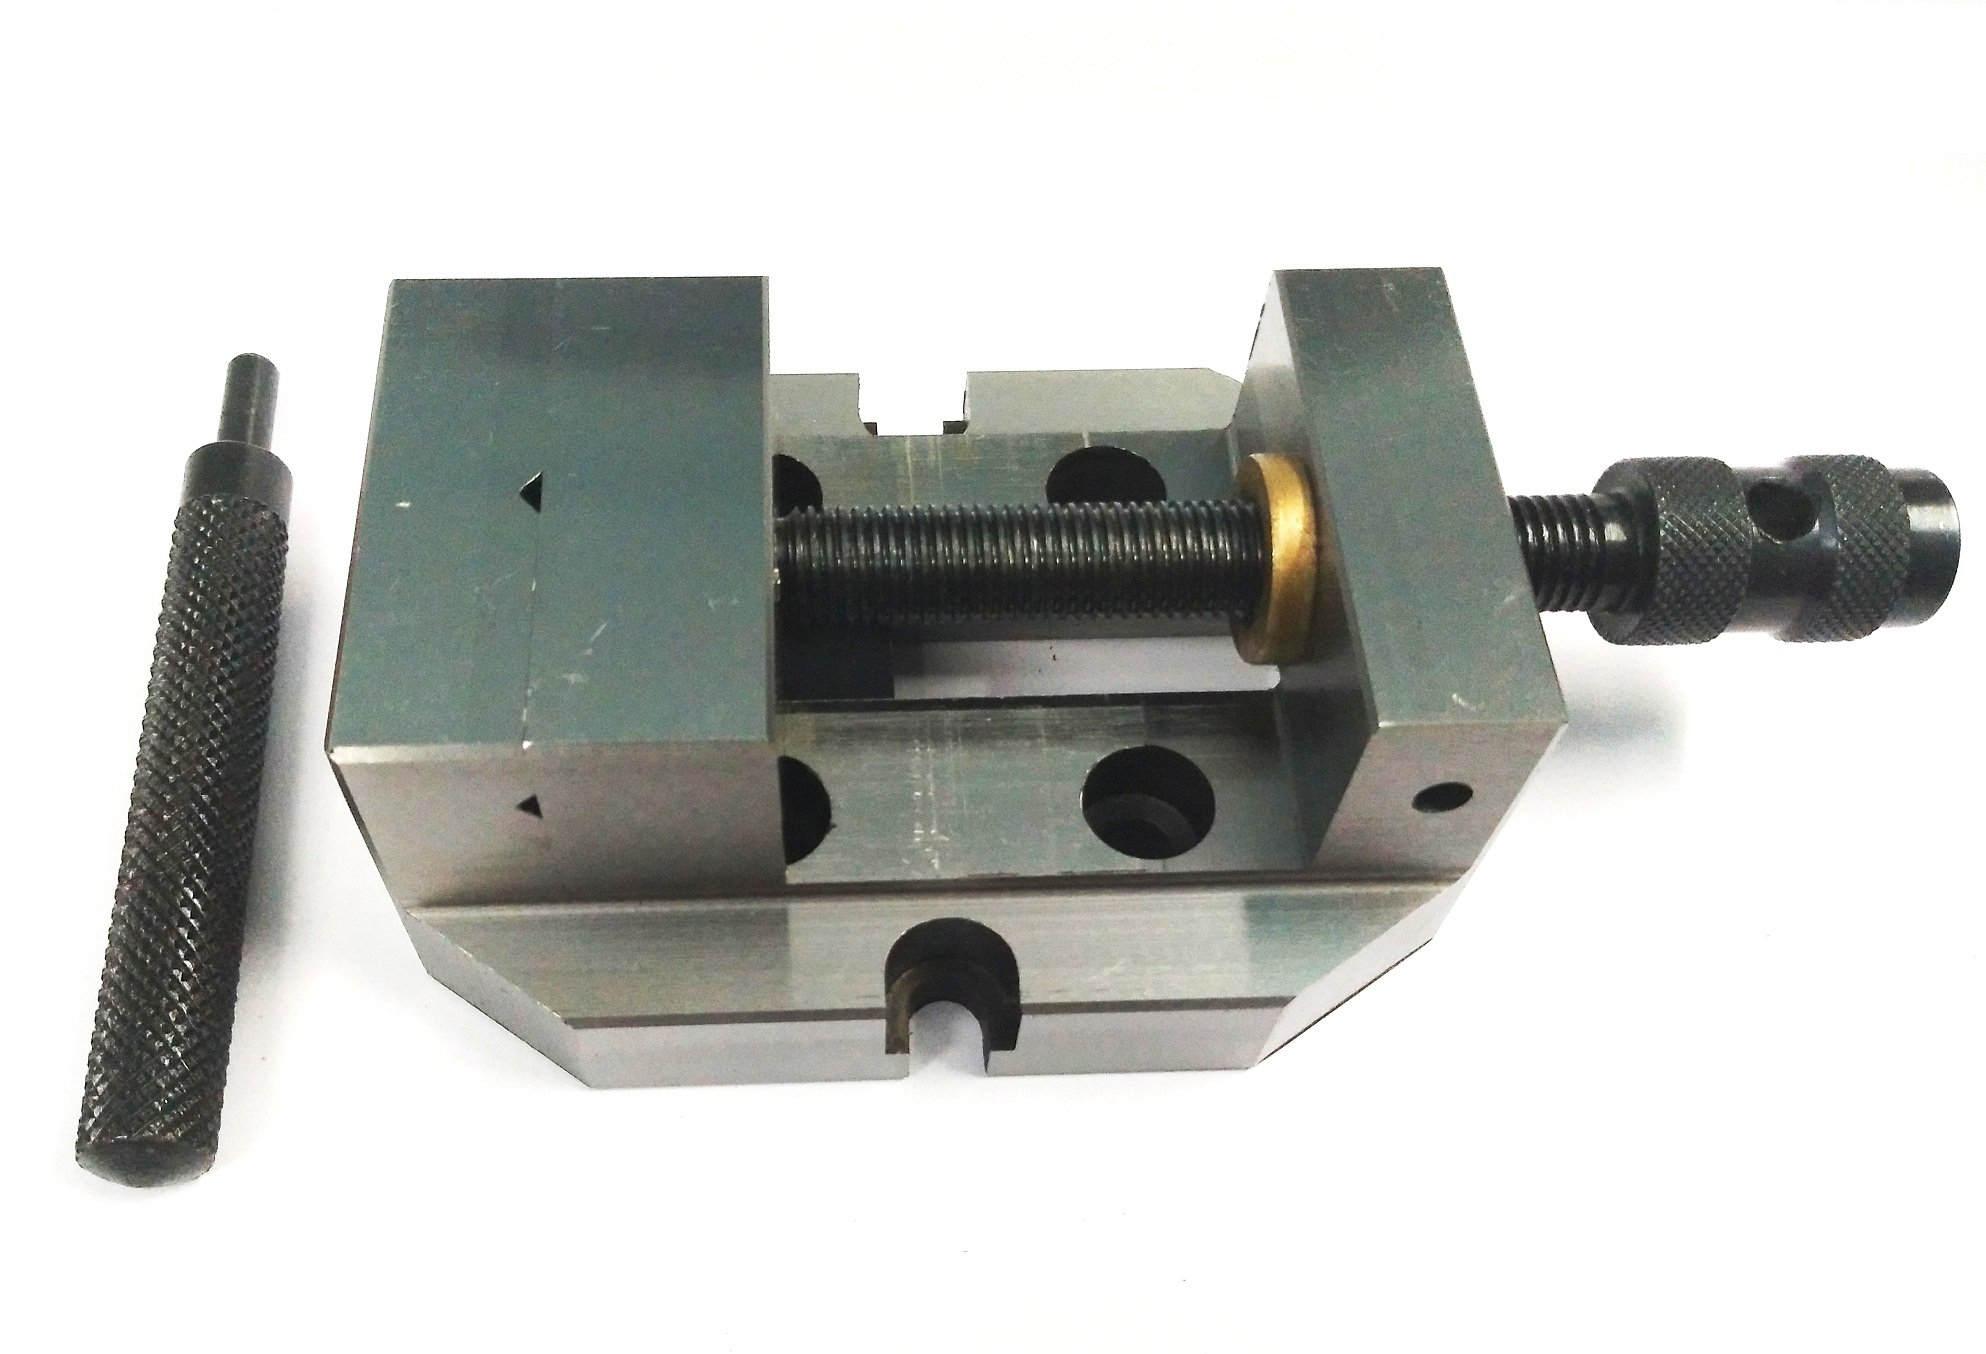 2-3/8'' Inches (60 mm) Jaw Width Grinding Steel Vice -Hardened & Ground Finish by Global Tools